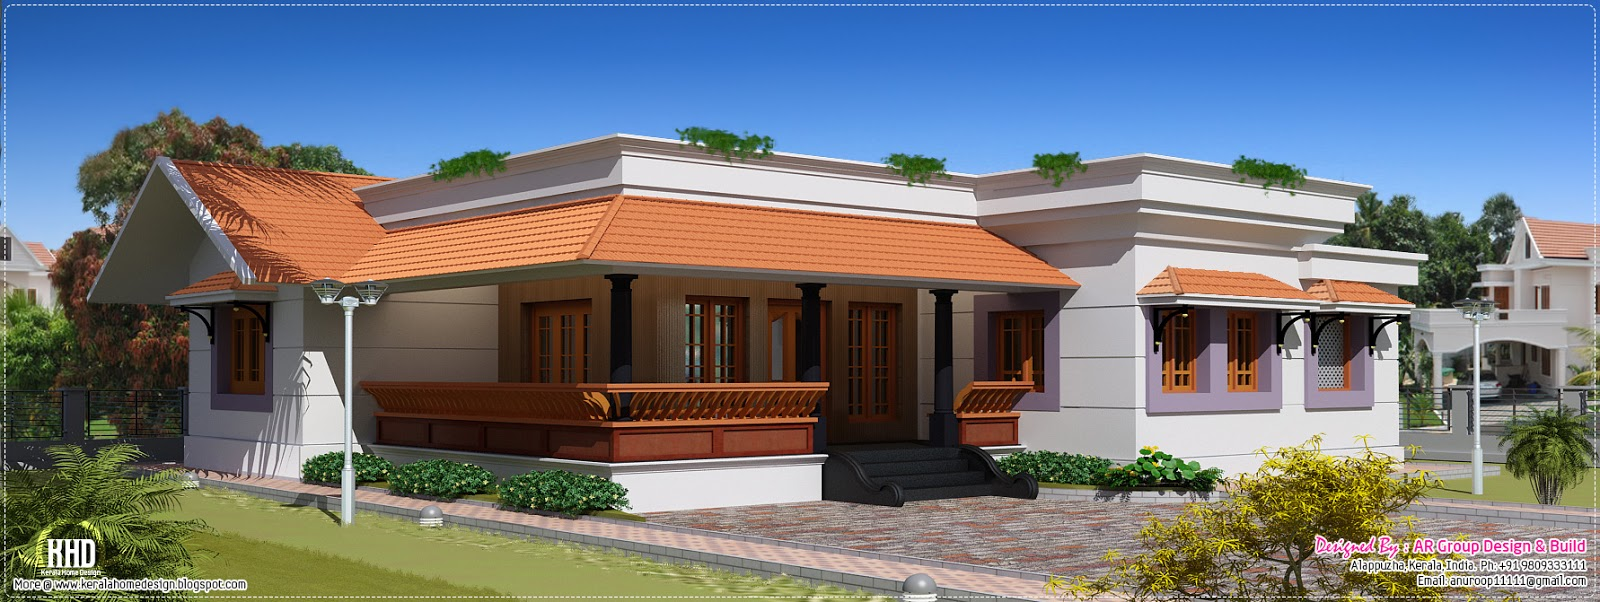 1600 sq feet single floor house kerala home design and for Home designs single floor